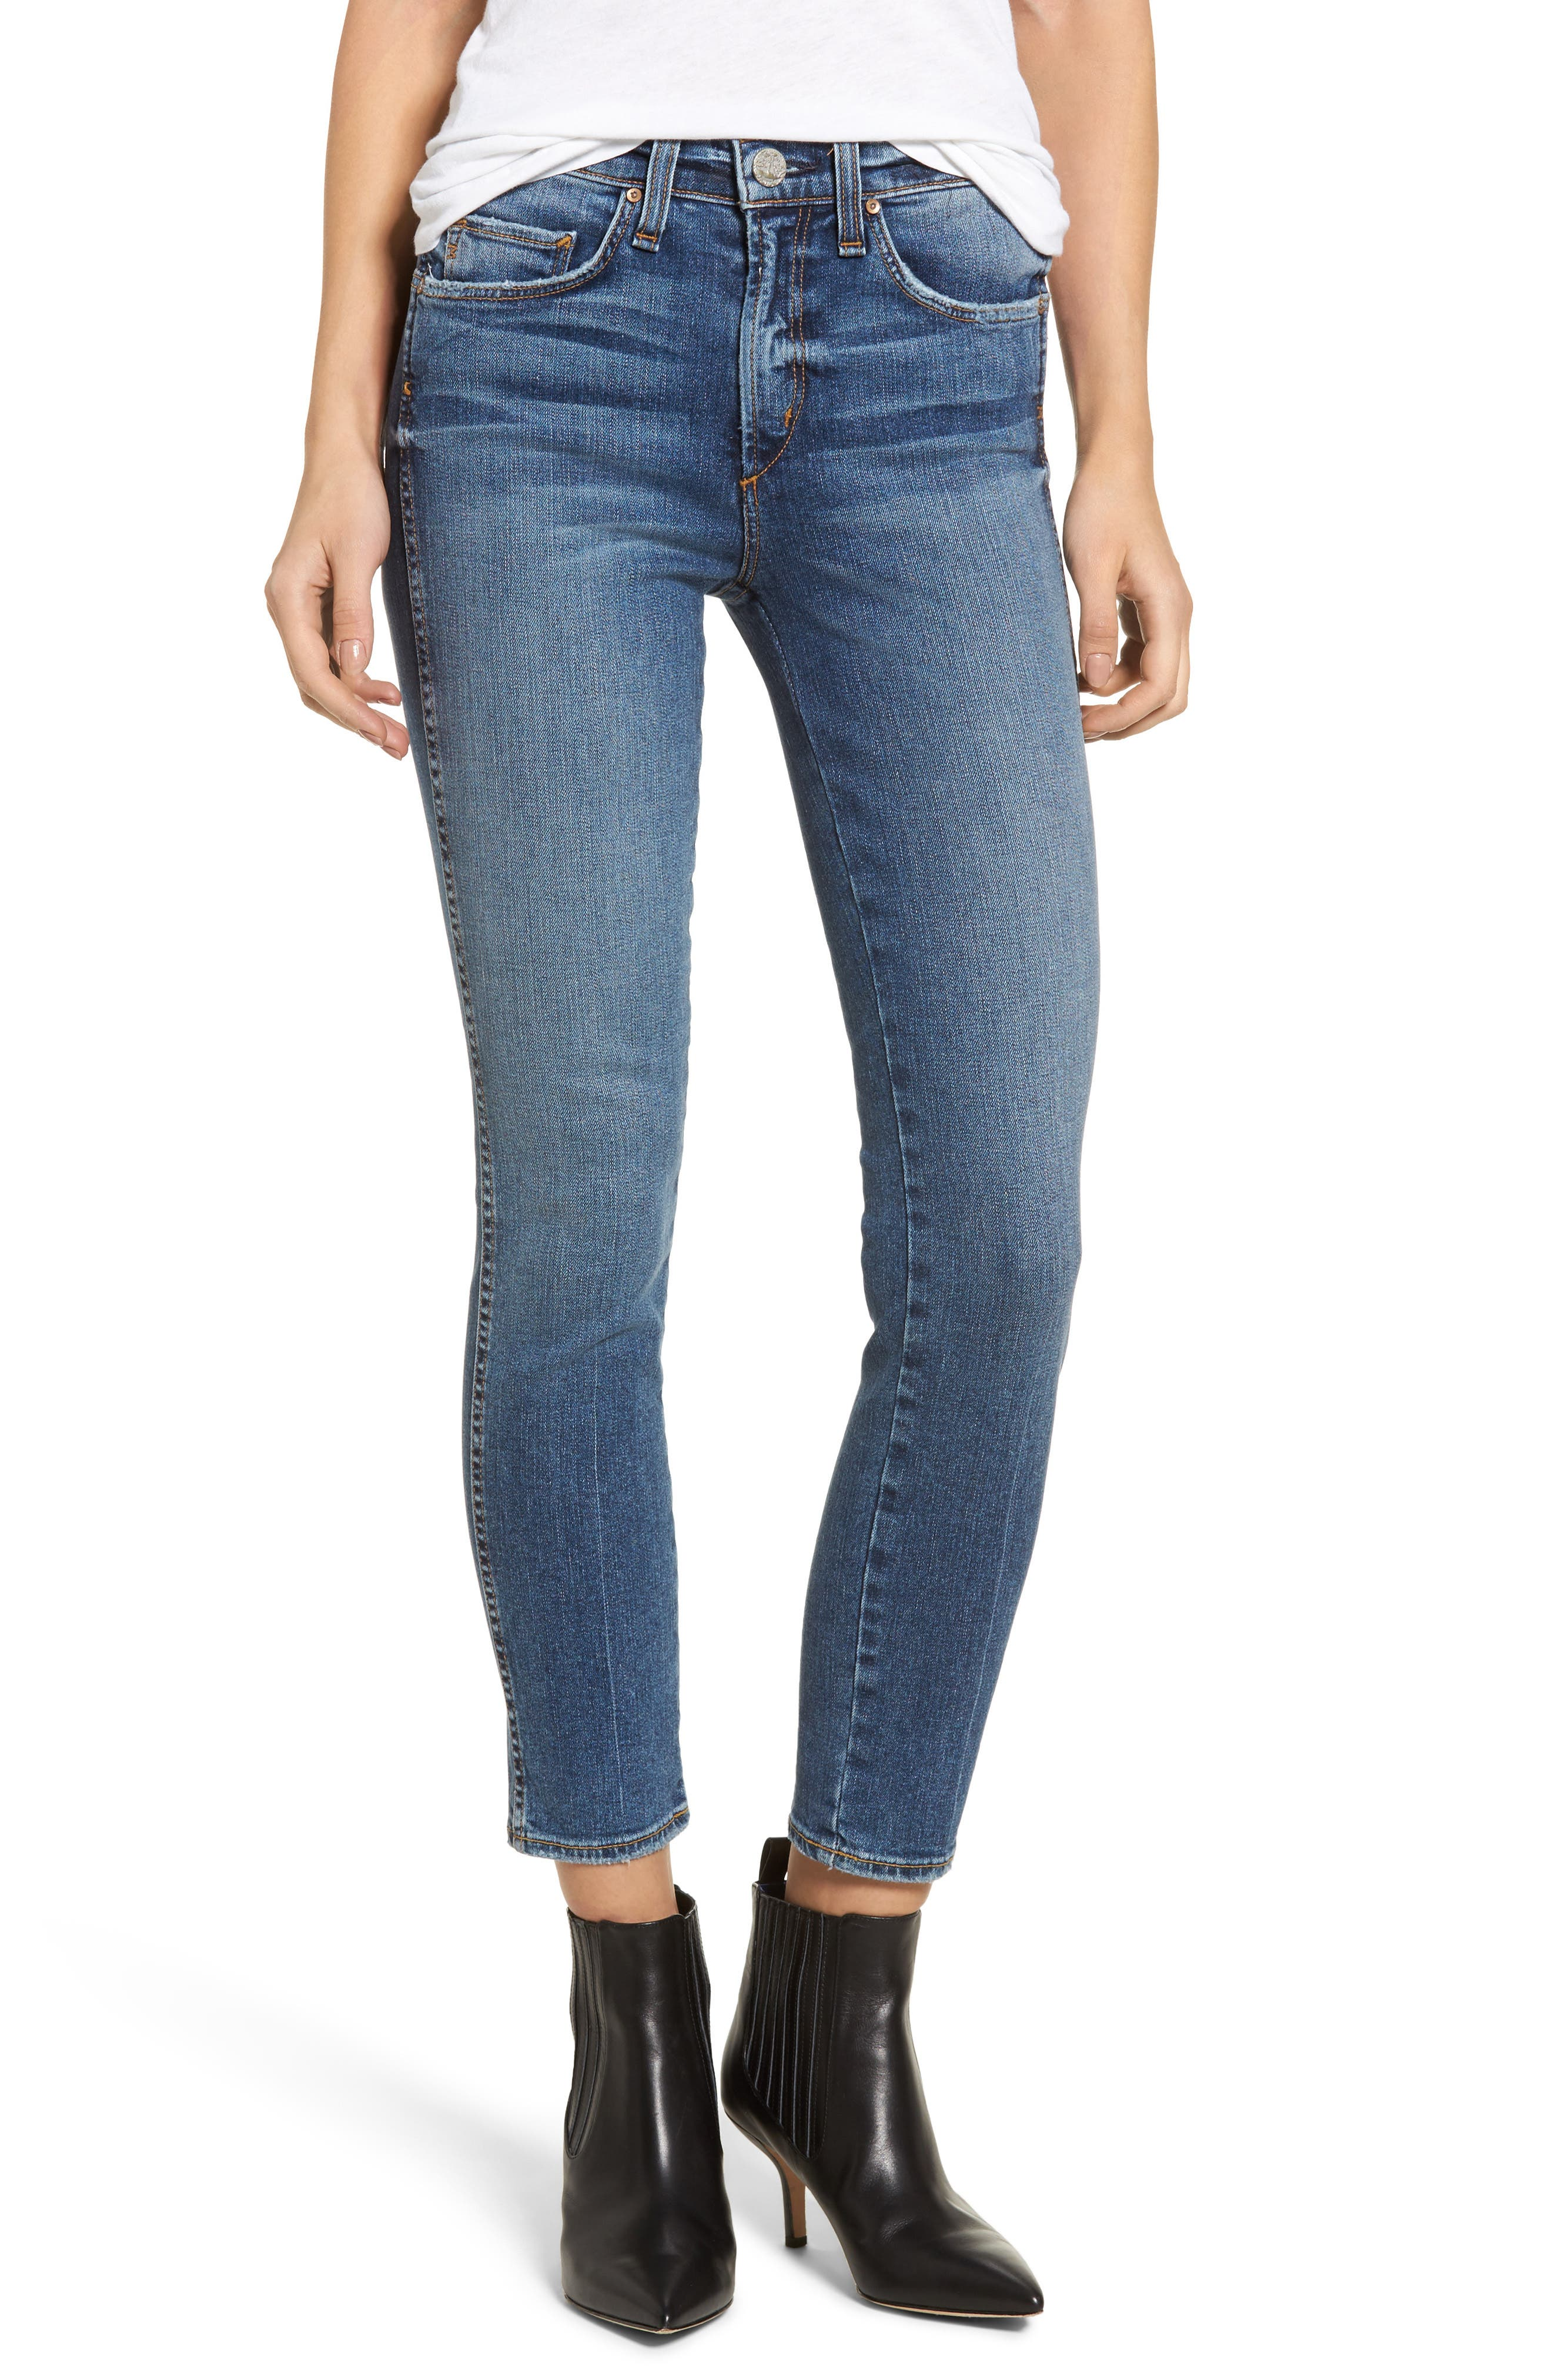 Windsor Destroyed High Waist Straight Leg Jeans,                             Main thumbnail 1, color,                             430